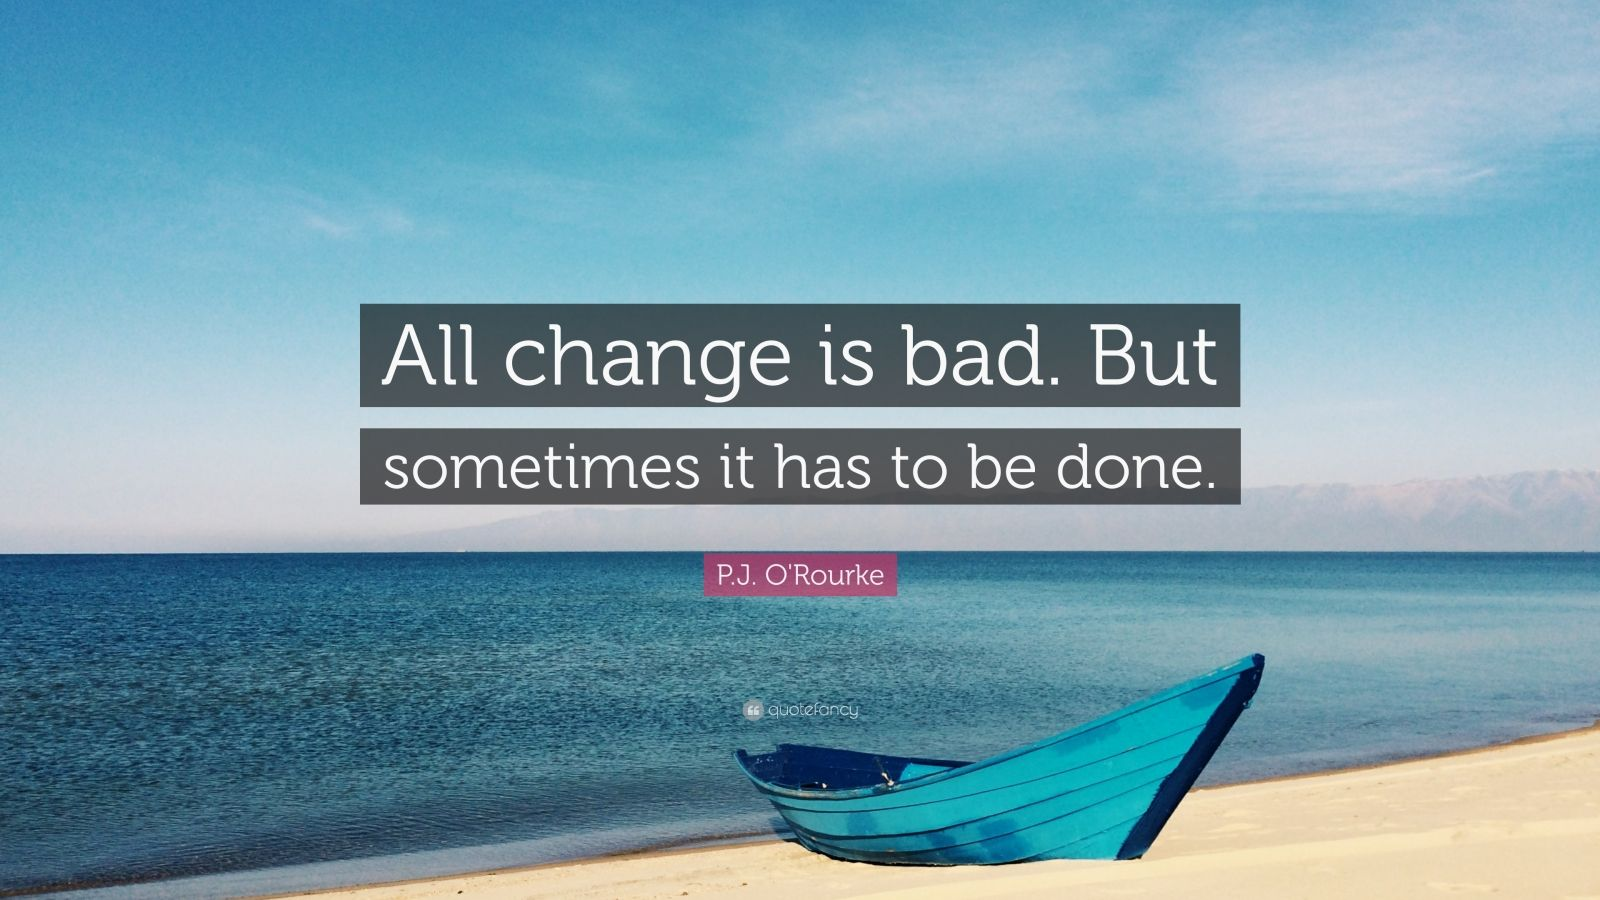 """P.J. O'Rourke Quote: """"All change is bad. But sometimes it has to be done."""""""